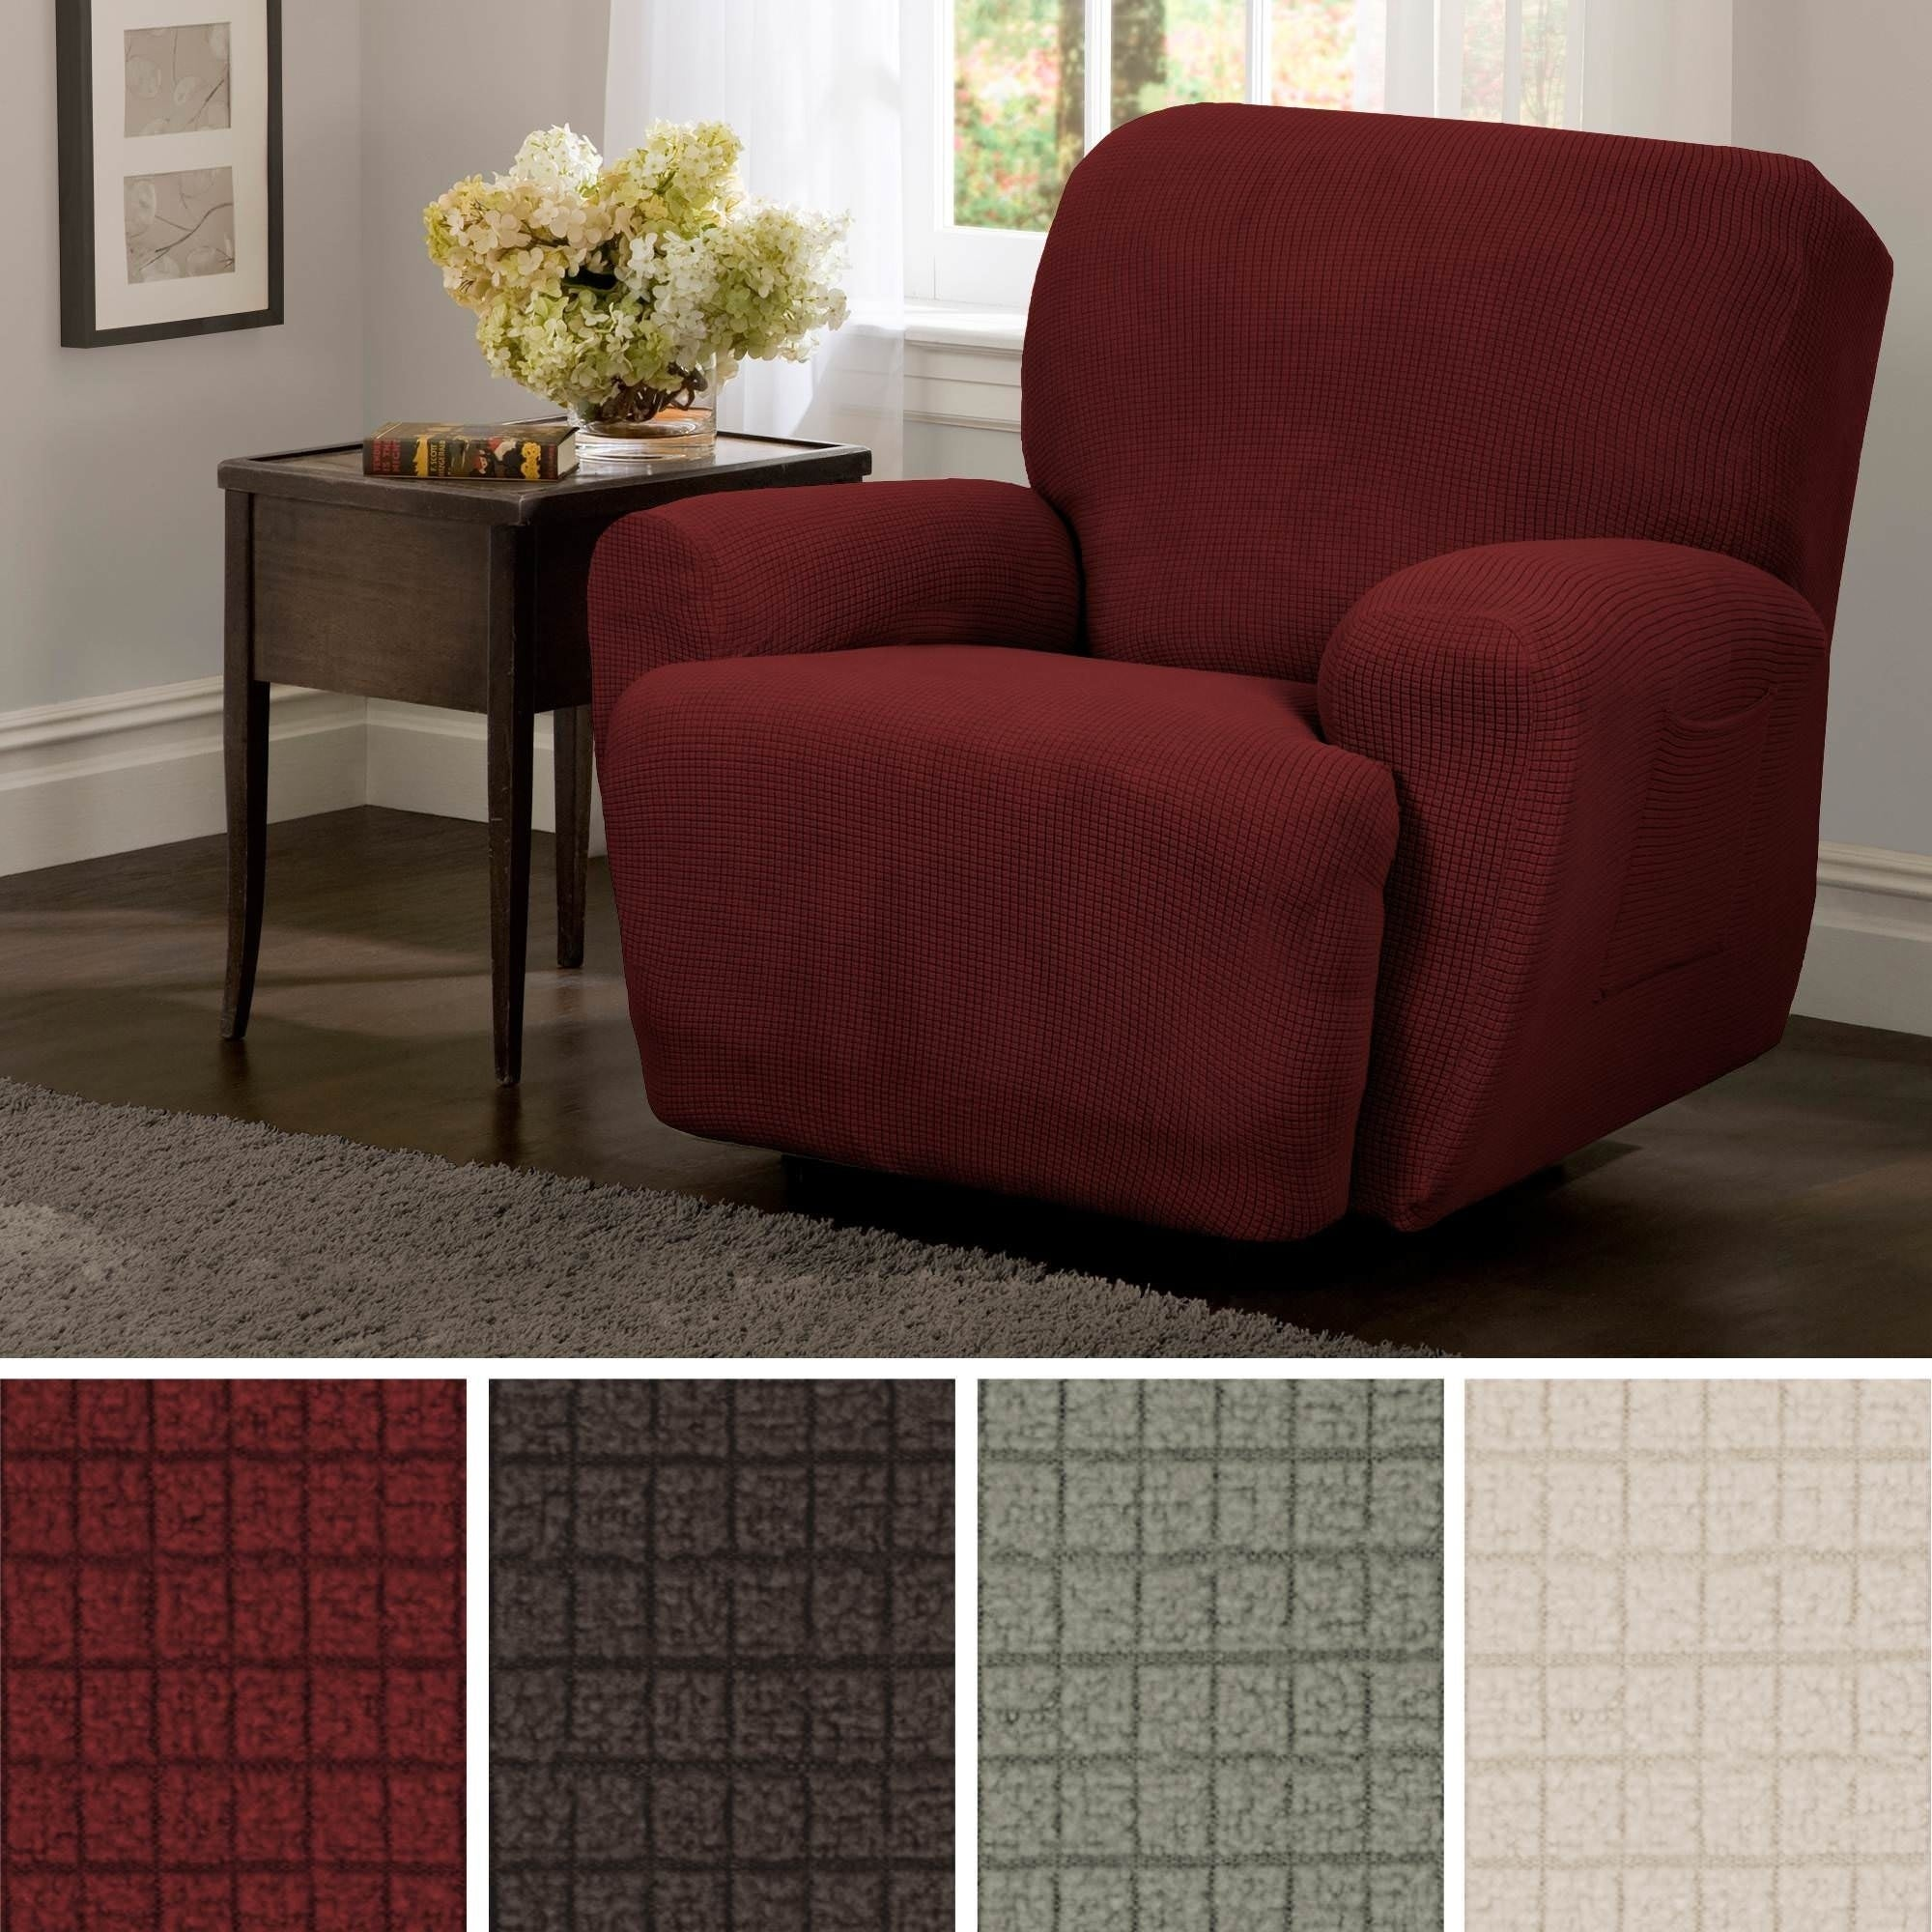 Washable Jersey Recliner Cover Lazy Boy Red Stretches